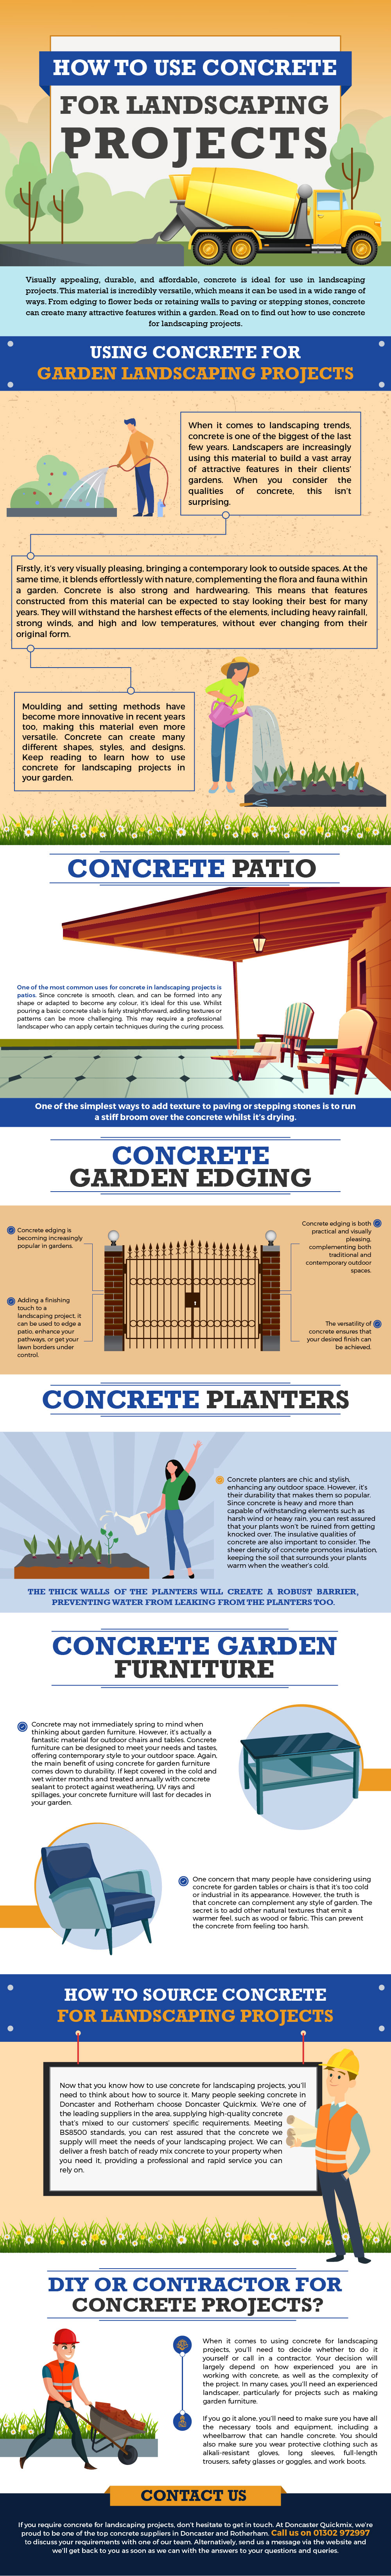 How to use concrete for landscaping projects [Infographic]